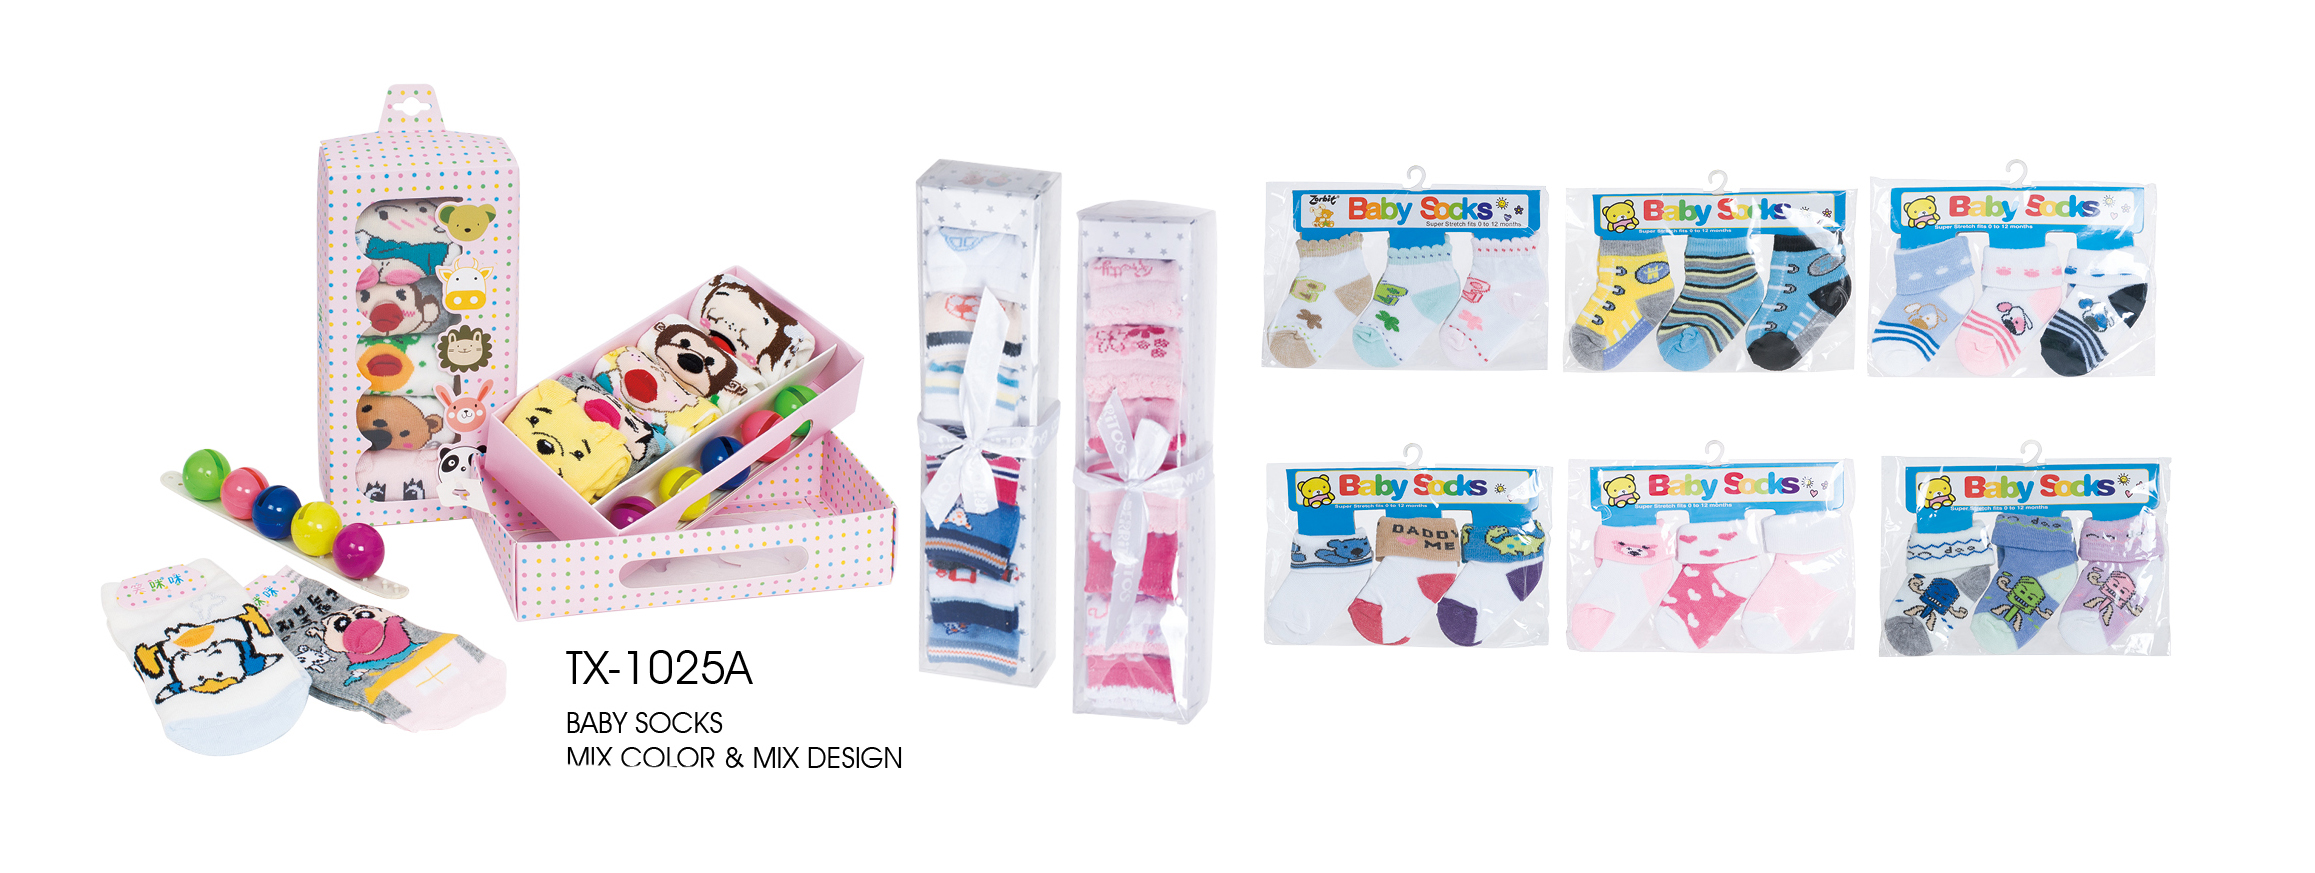 New Fashion Socks Gift Packing